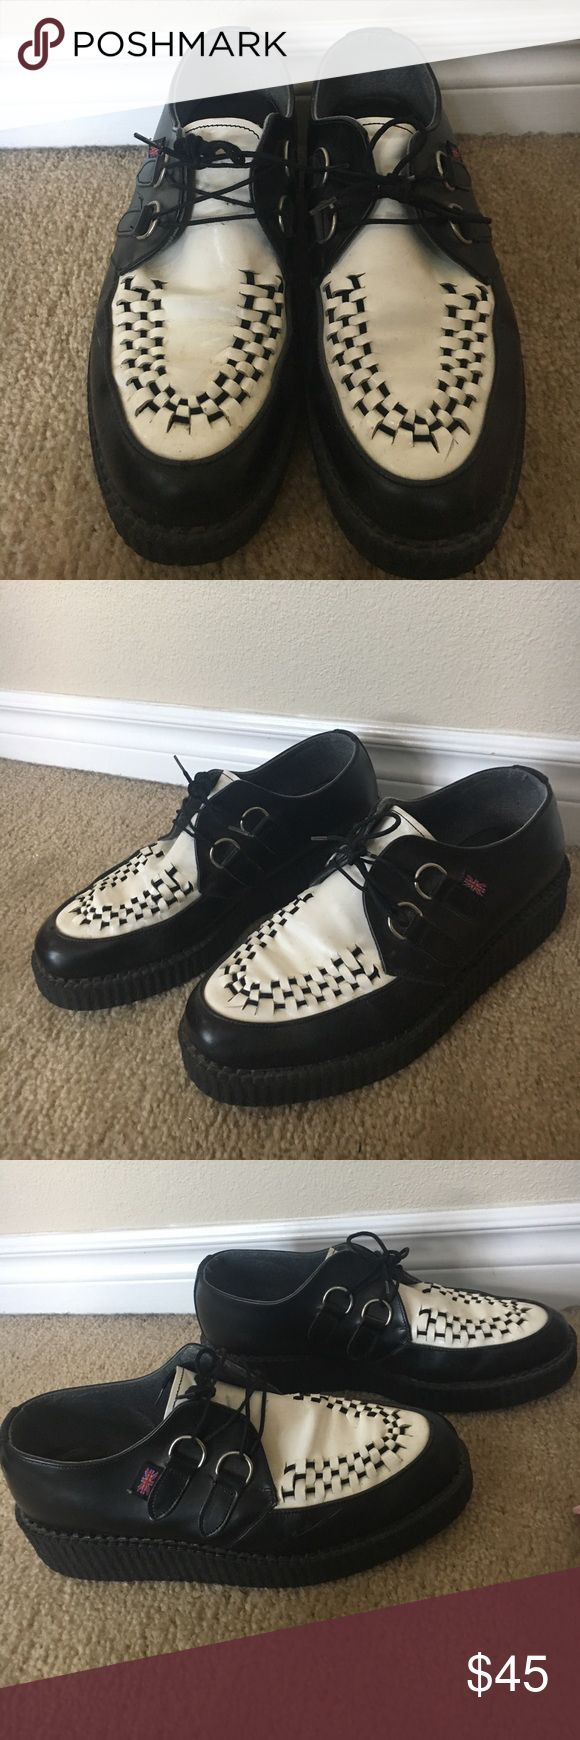 BLACK AND WHITE TUK CREEPERS MADE IN ENGLAND No size tagged! But i am a women's 10 or 10.5 and they fit perfect! I am assuming they are a mens 8.5 or 9. Photos indicate signs of wear TUK Shoes Platforms